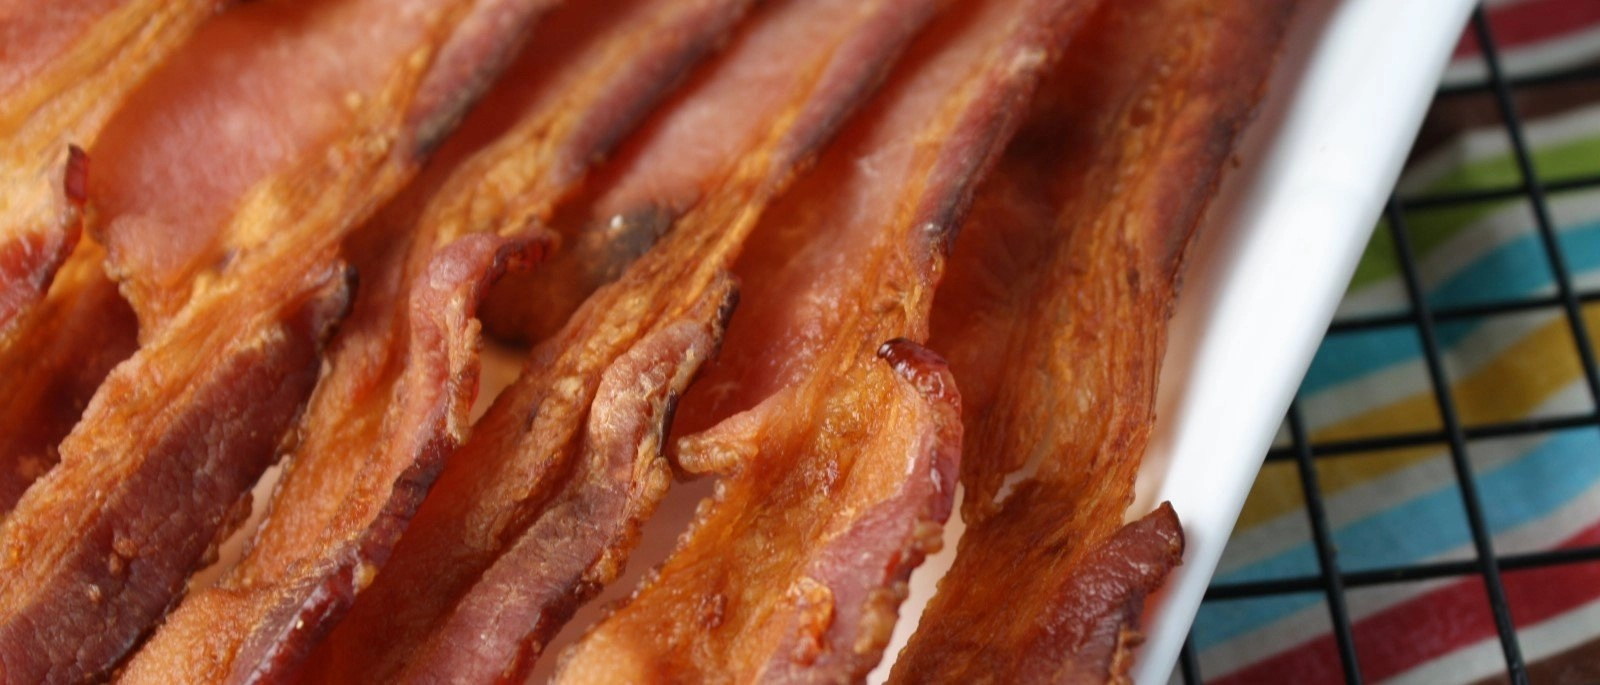 best microwave bacon cookers review for